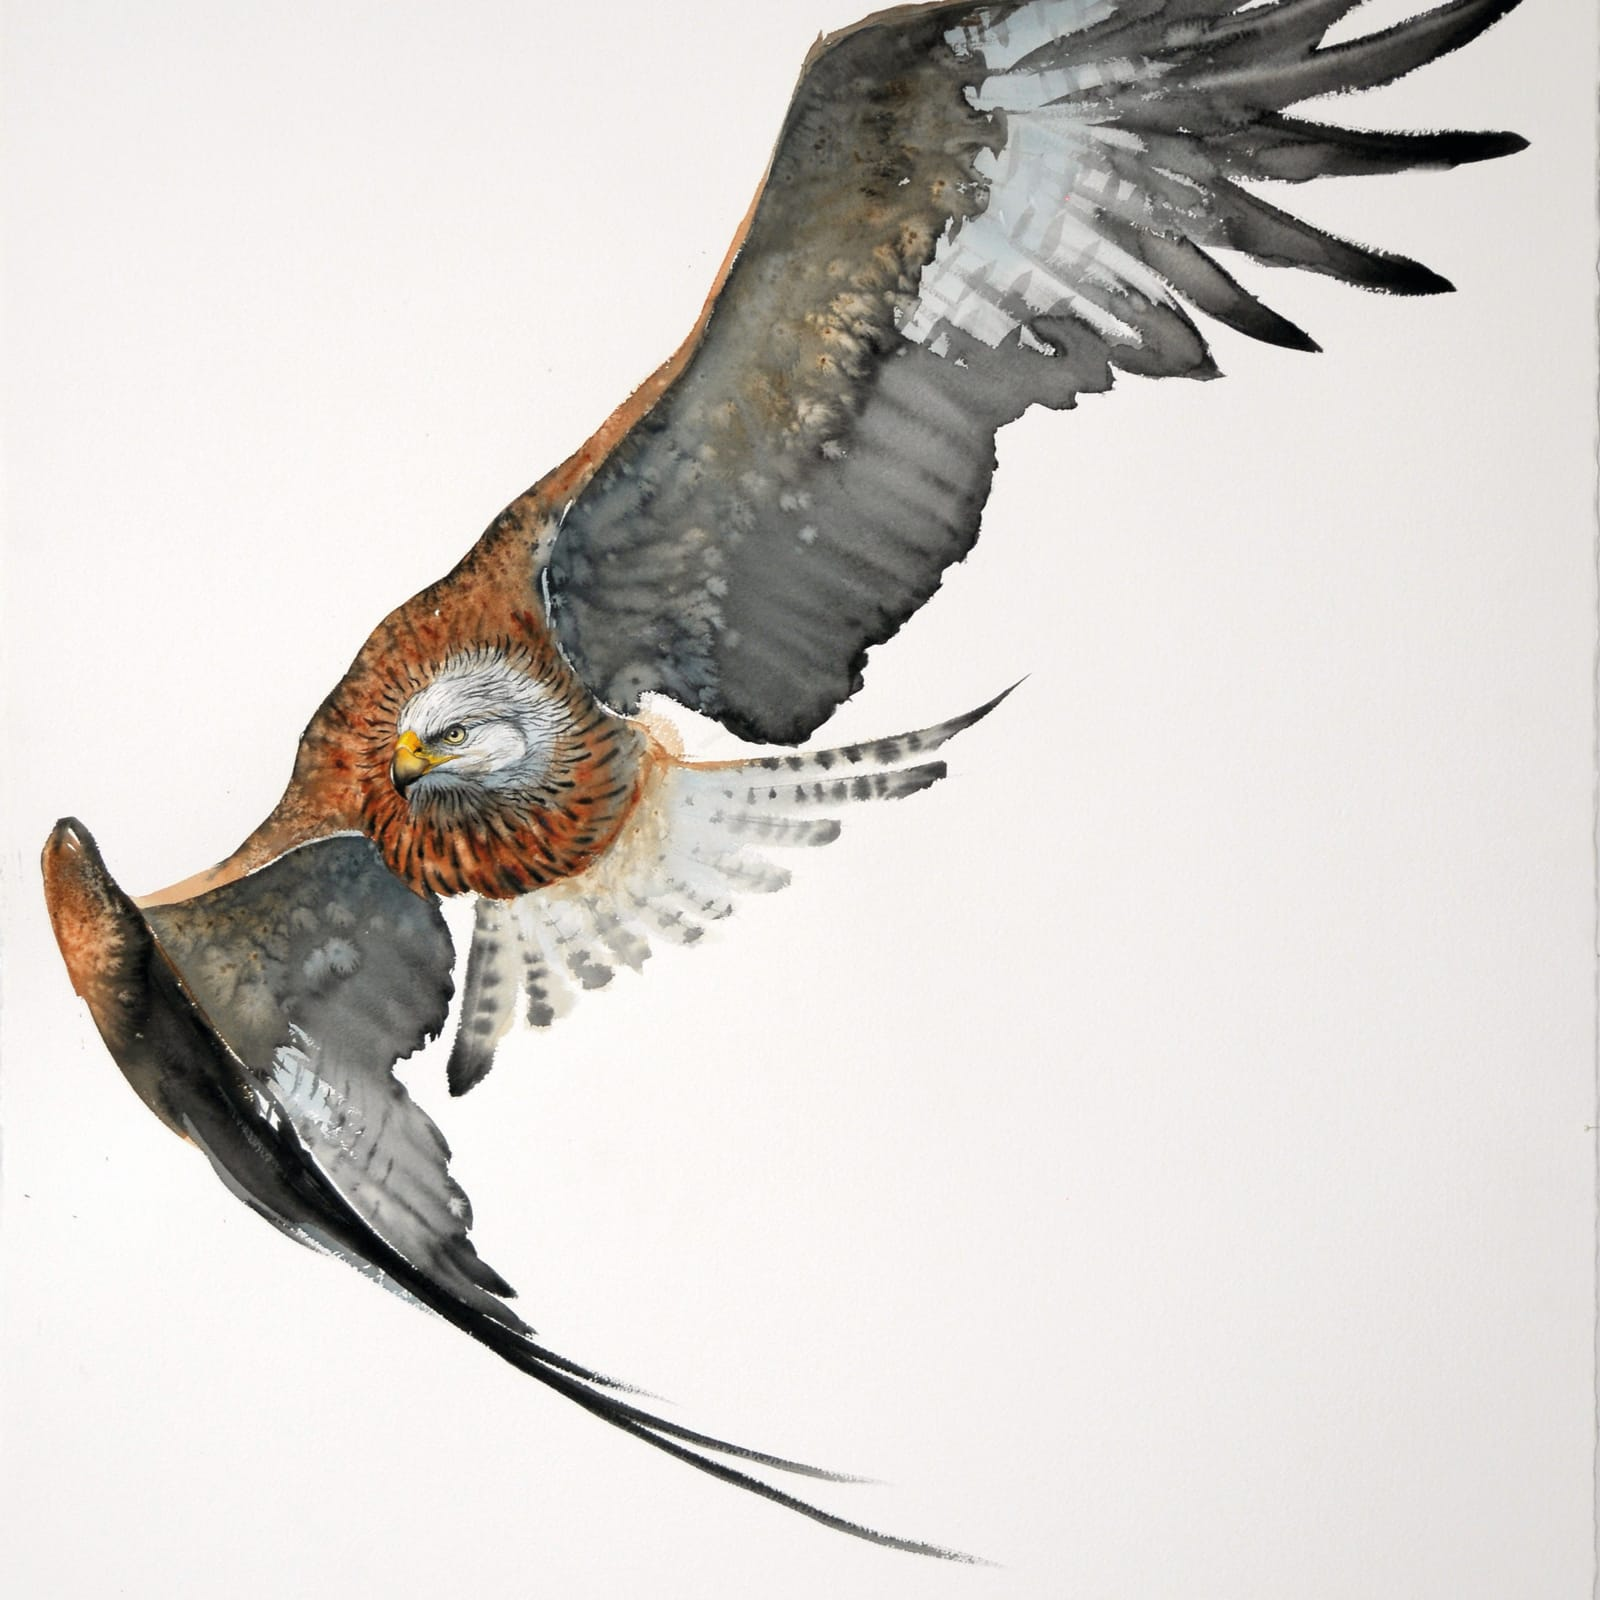 Karl Martens  RED KITE IN FLIGHT (UNFRAMED)  Watercolour  153 x 103 cm  60 1/4 x 40 1/2 in